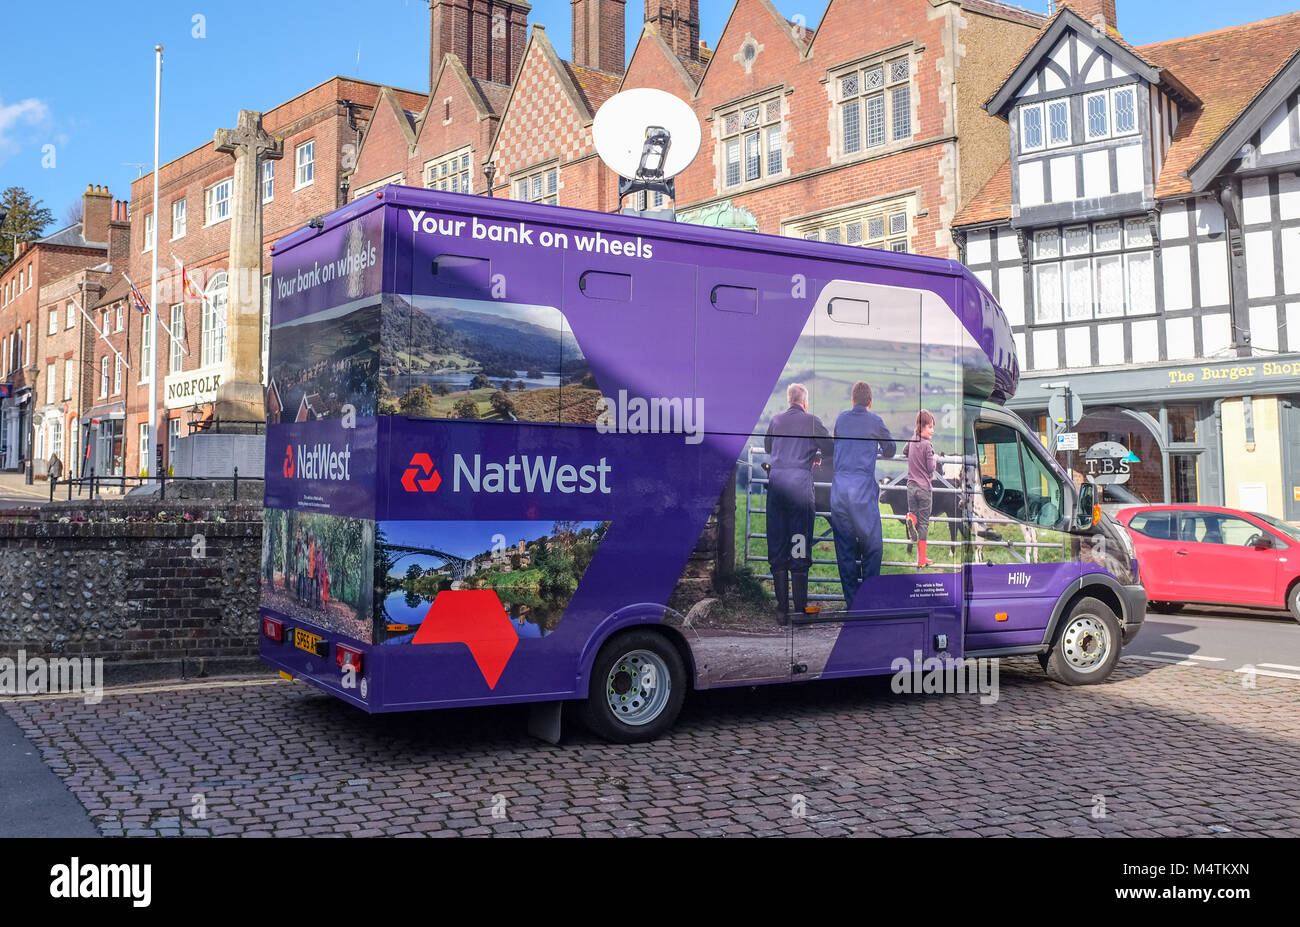 Rural Natwest Bank Stock Photos & Rural Natwest Bank Stock Images ...